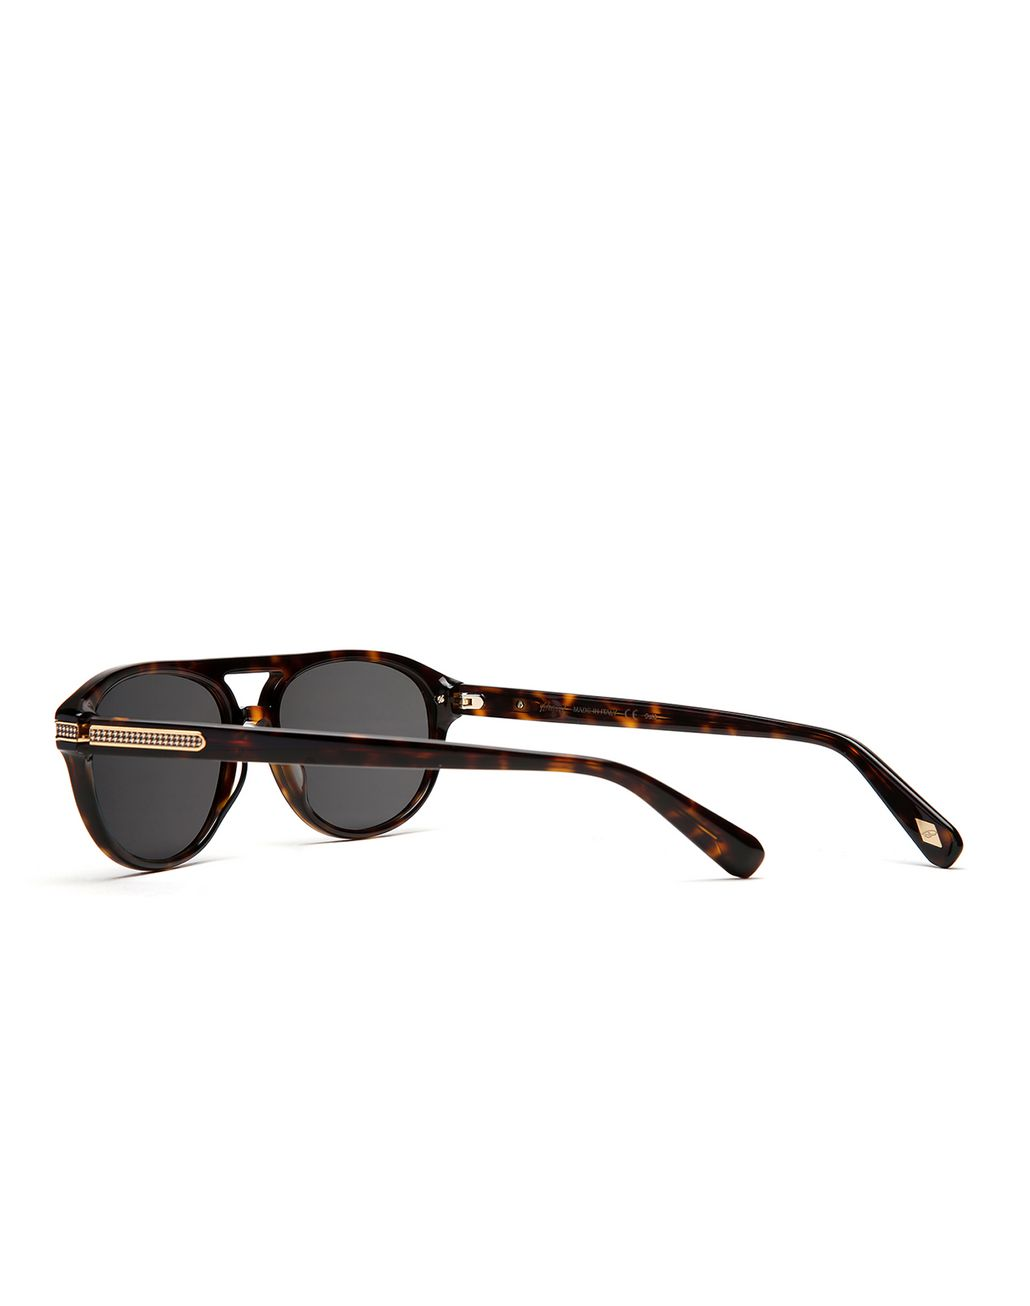 BRIONI Havana Sunglasses with Green Lenses  Sunglasses Man d